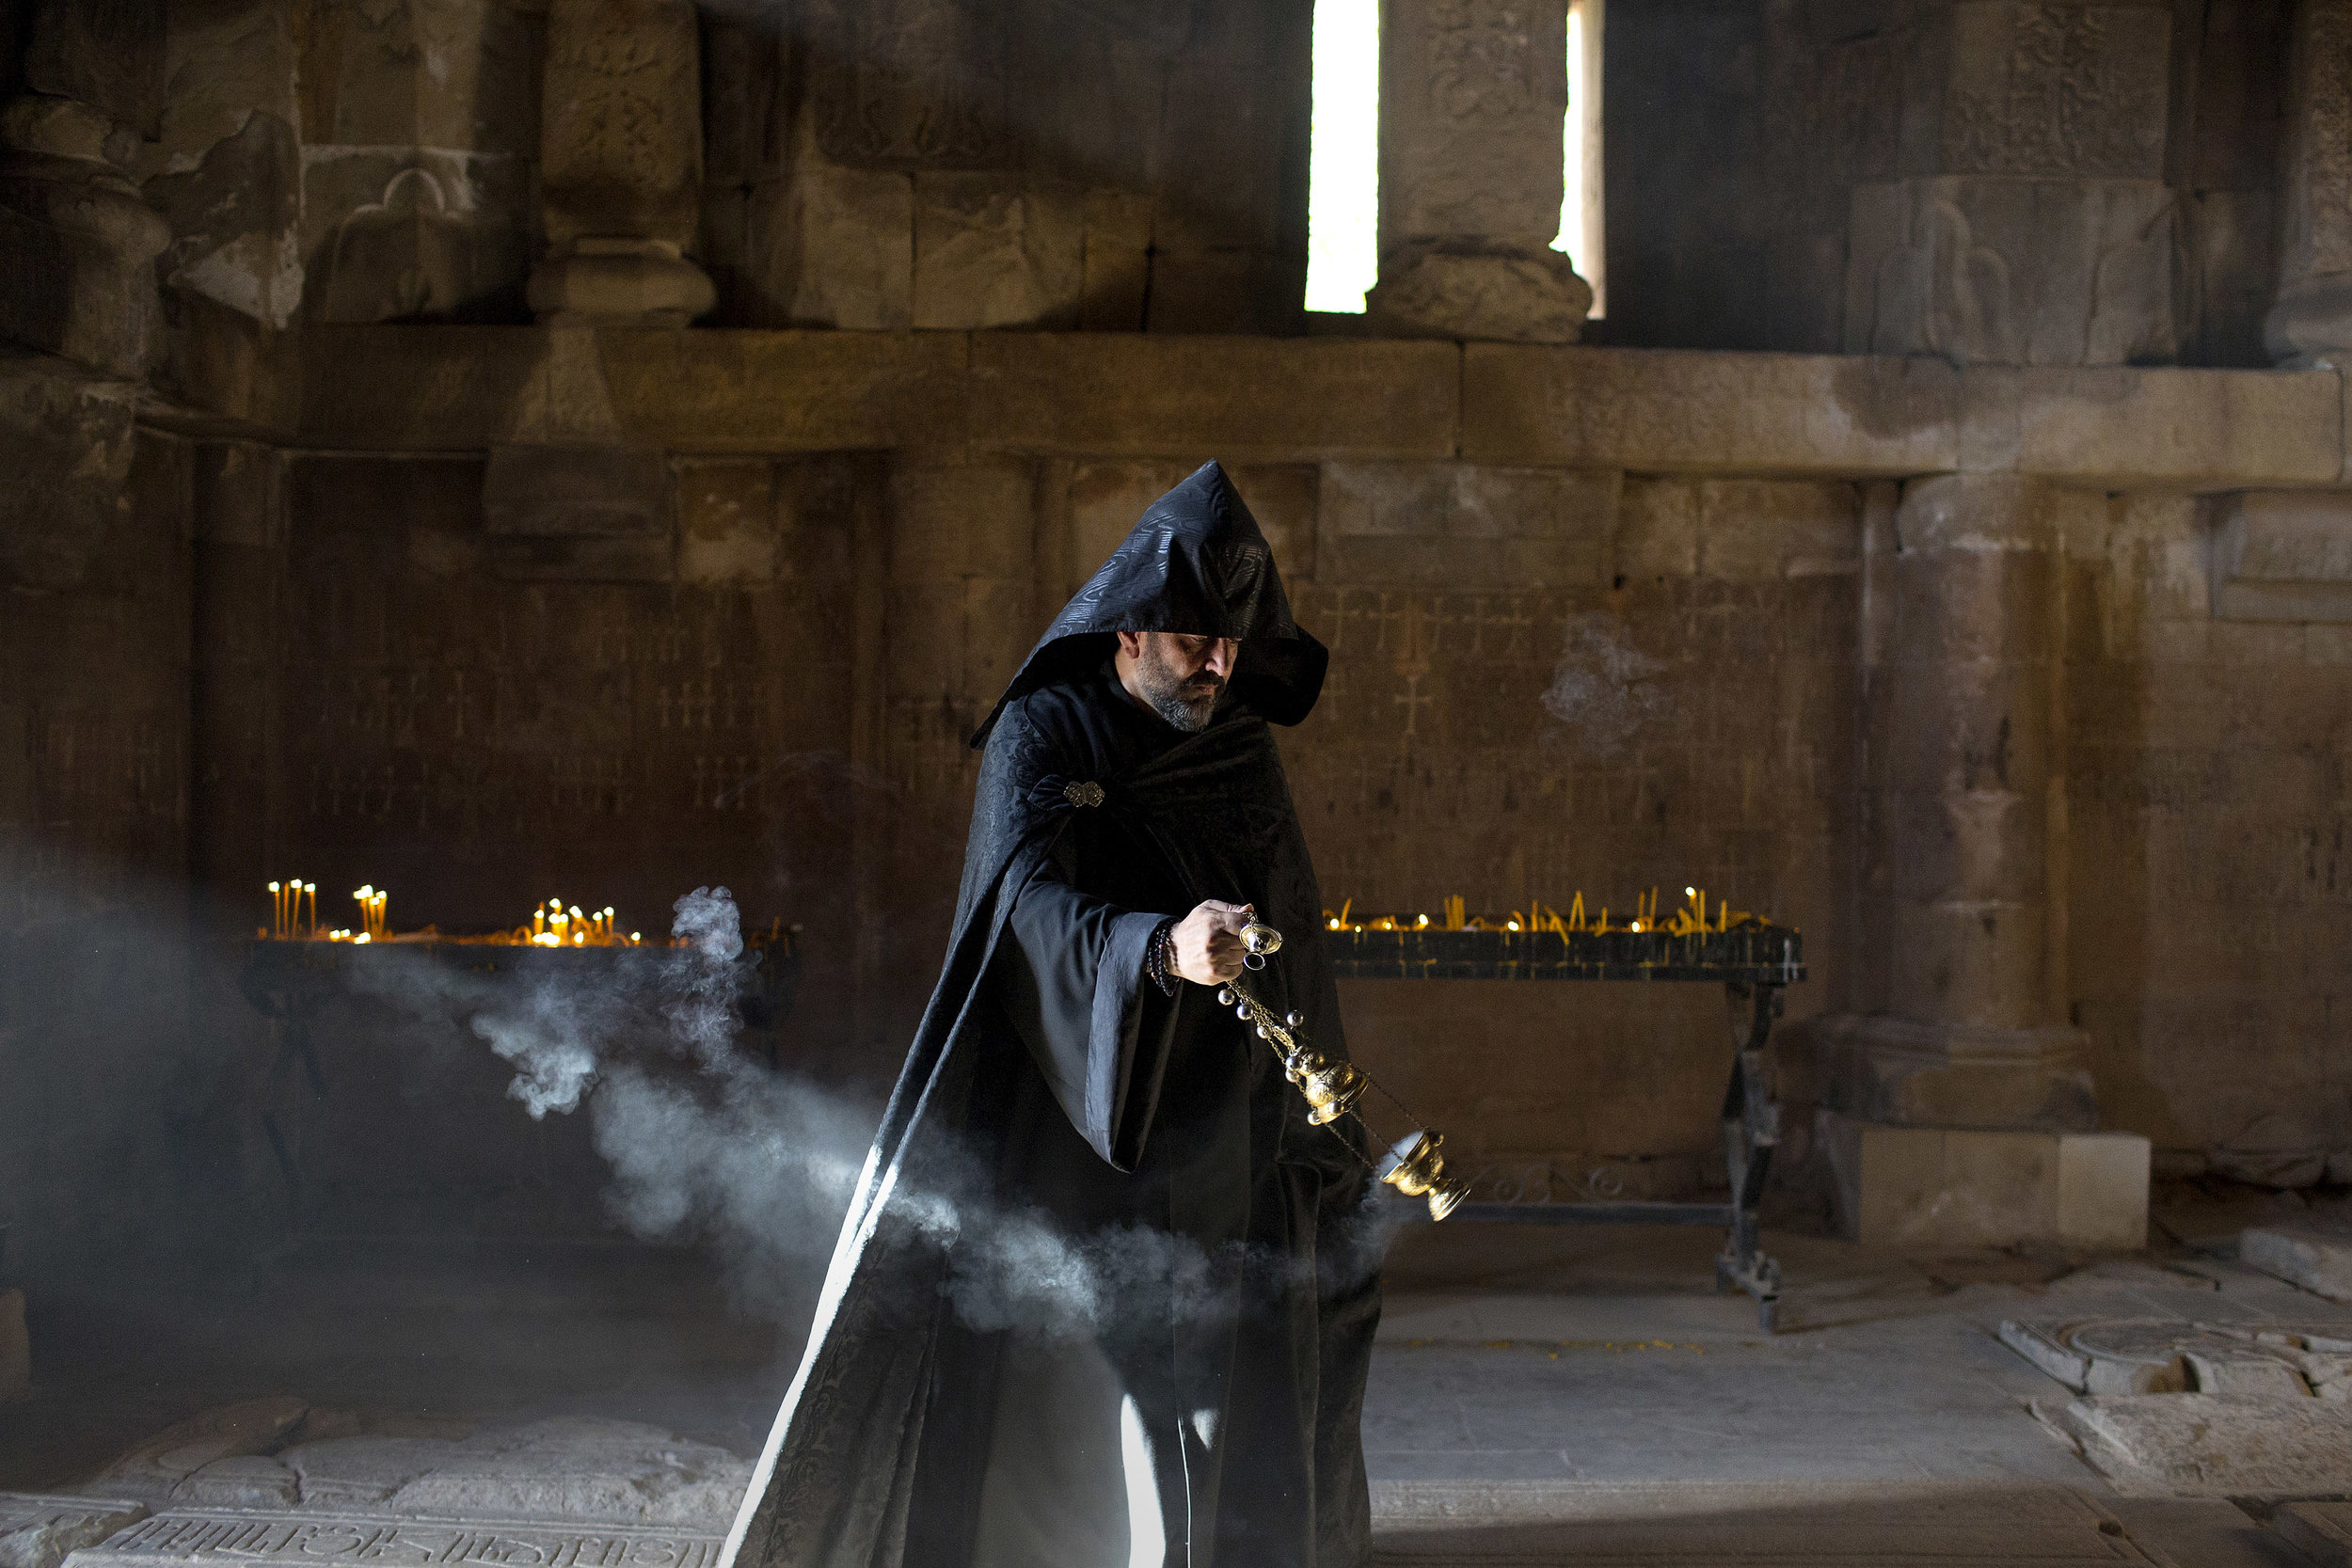 DANIELLE VILLASANA www.daniellevillasana.com |  @davillasana   Father Zareh offers incense in the Surb Karapet Church of the Noravank Monastery complex in Armenia on August 11, 2018.  From The New York Times:    An Ancient Land, Newly Optimistic